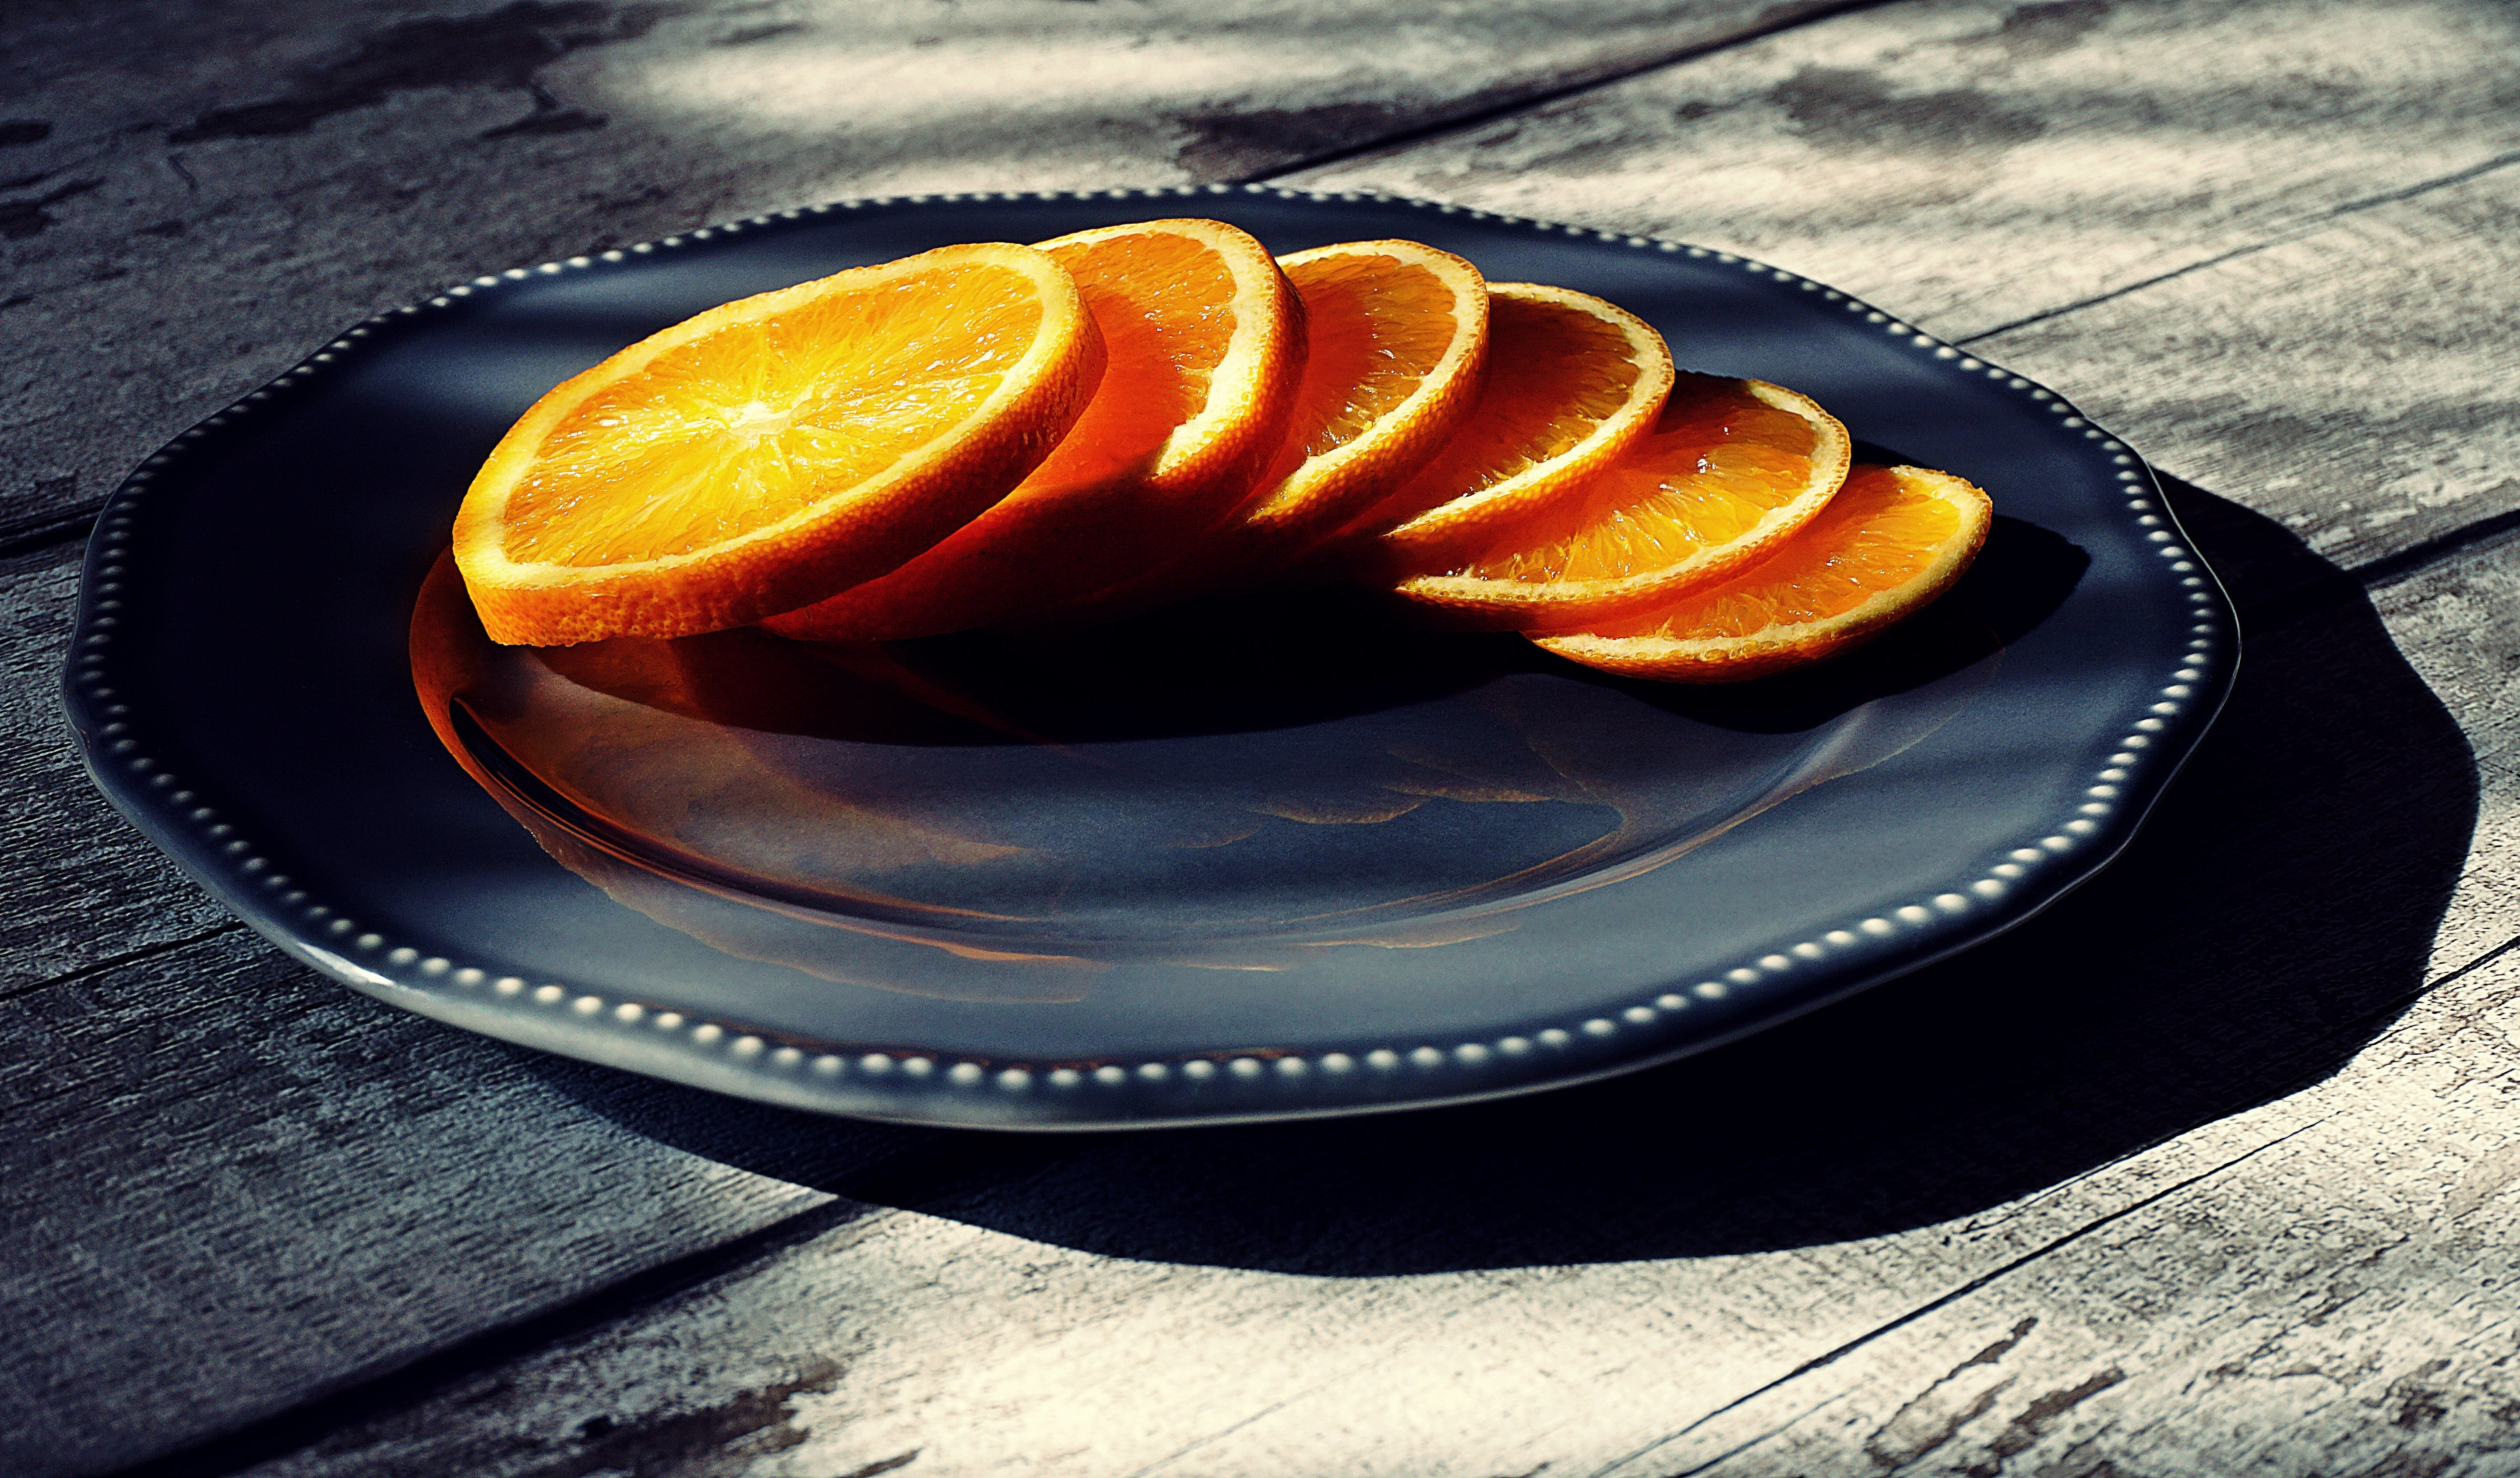 Six Slices of Oranges on Black Ceramic Plate